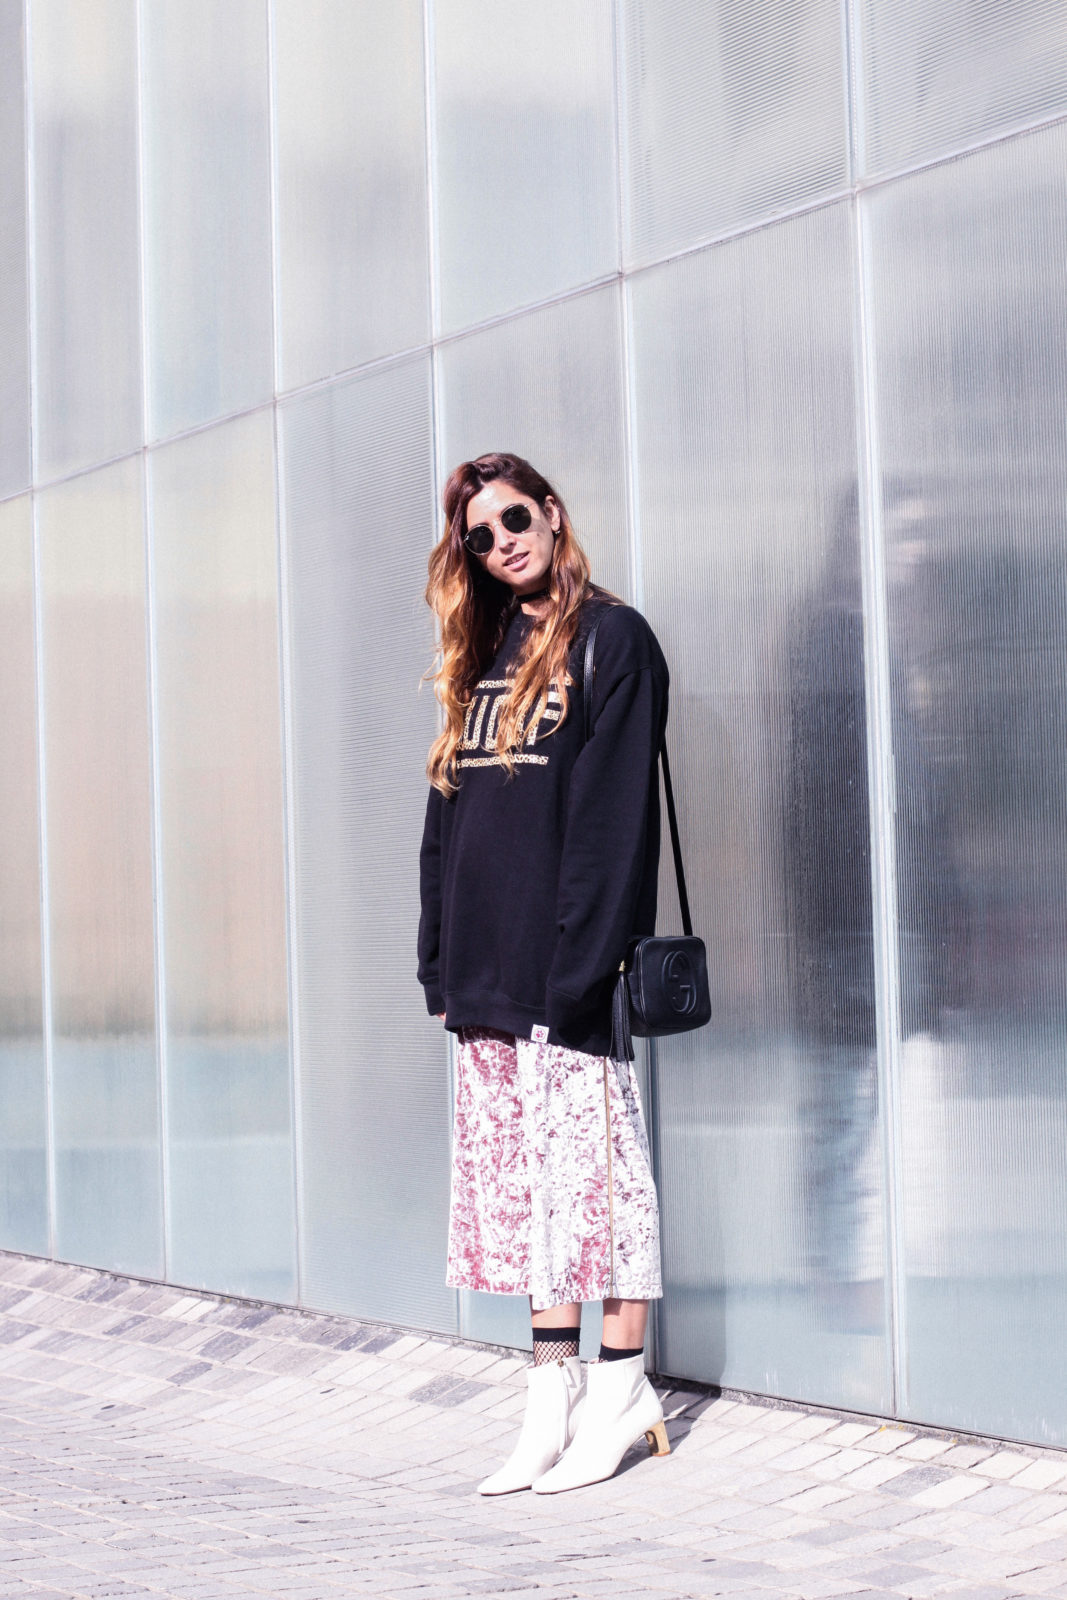 sudadera_woof_old_dogs_pantalones_terciopelo_rosa_botines_blancos_sweatshirt_oversize_choker_calcetines_rejilla_tendencias_2016_fall_trends_street_style_donkeycool-8